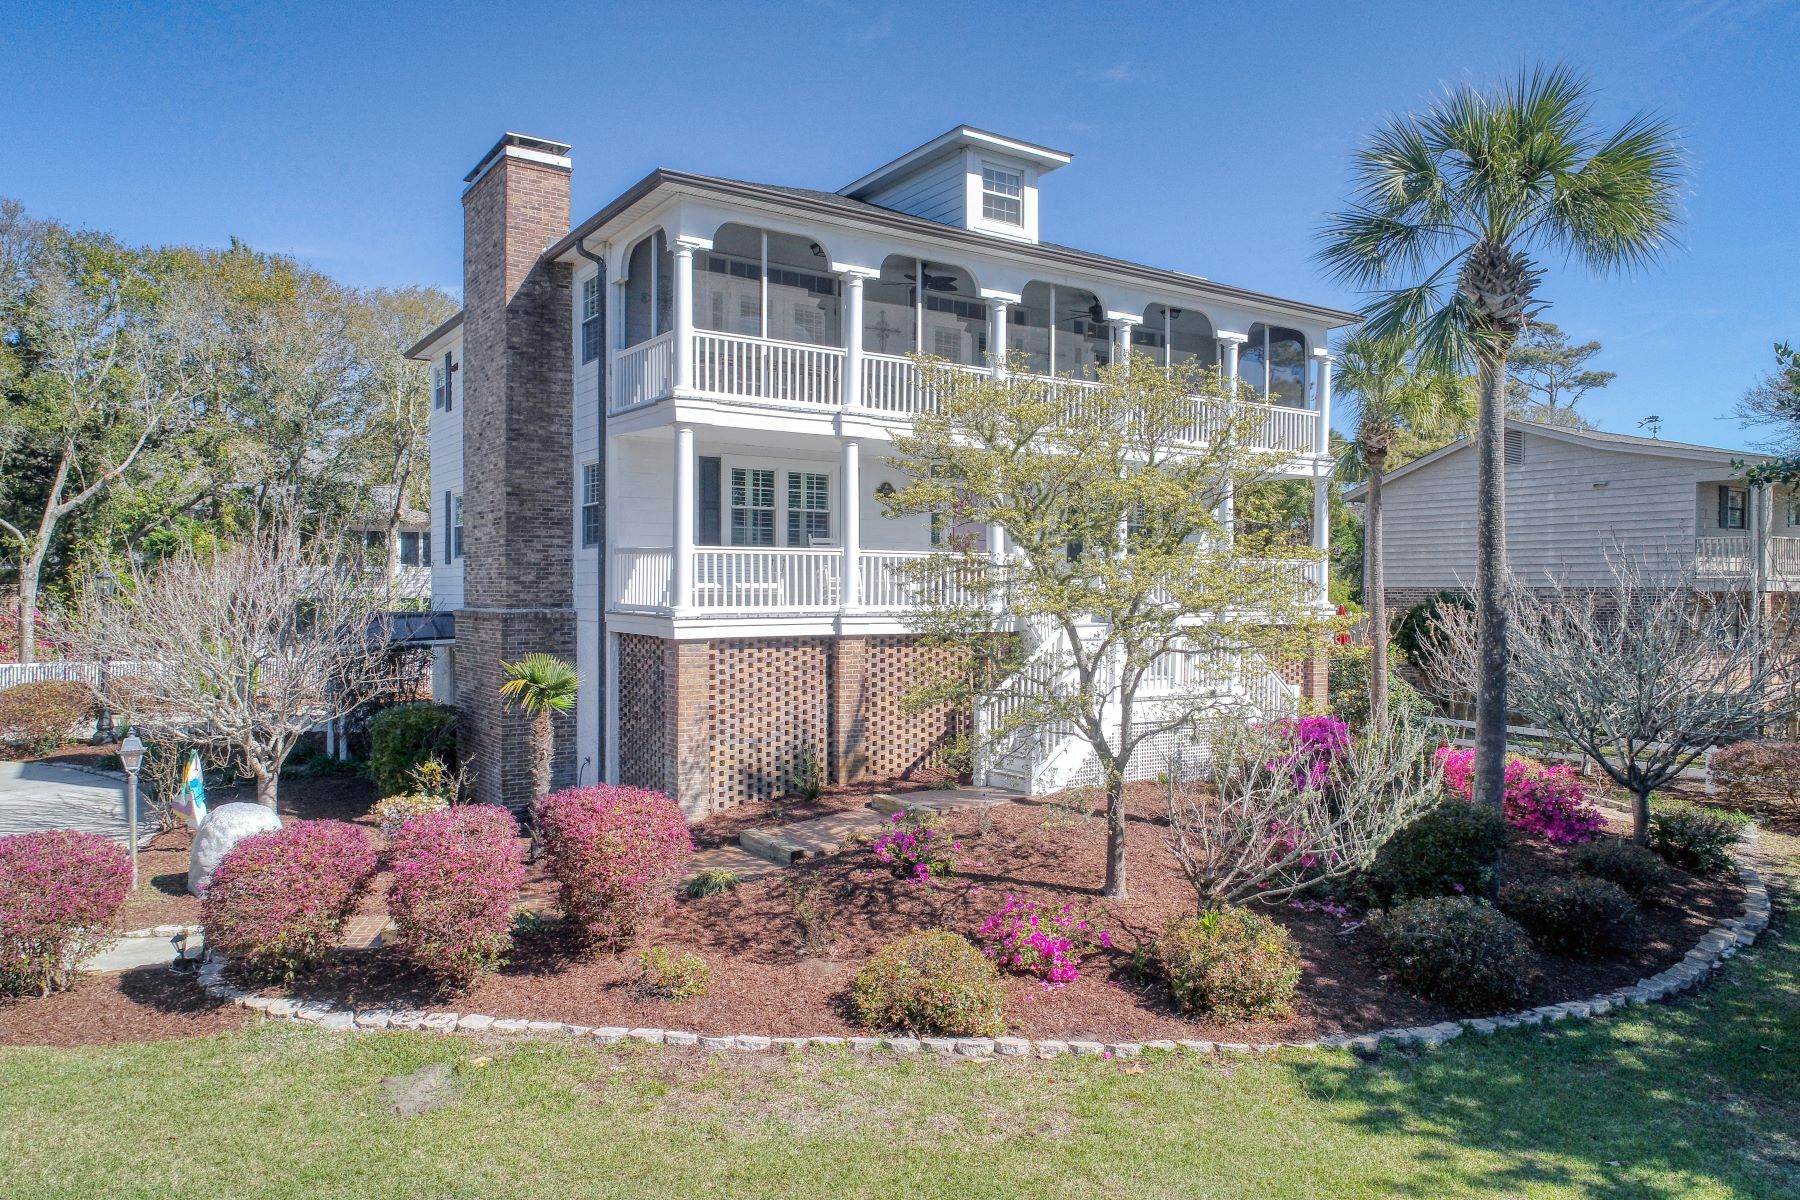 Single Family Homes for Sale at Quintessential Southern Charm 1301 Hillside Dr N North Myrtle Beach, South Carolina 29582 United States